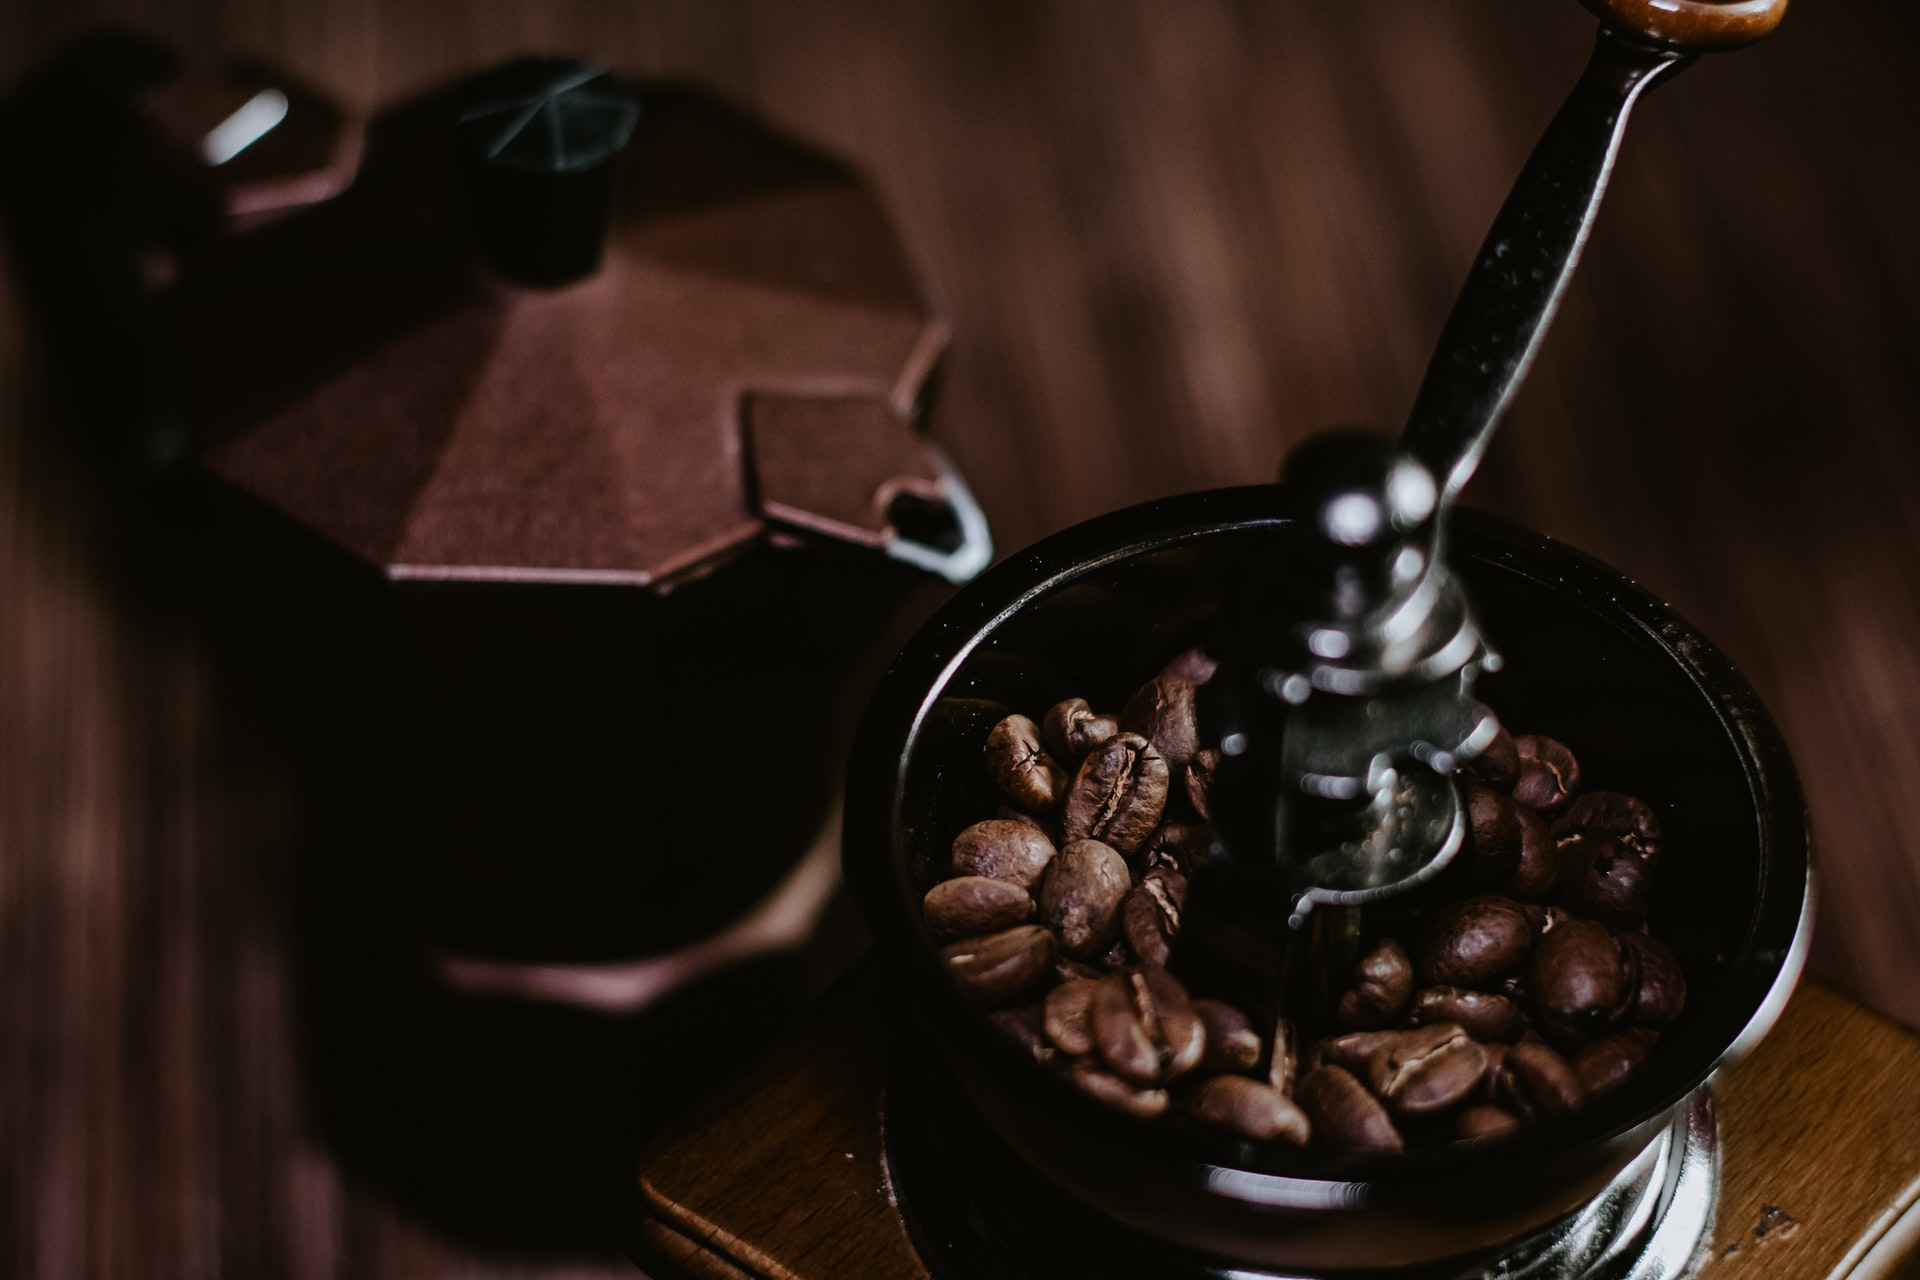 a moka pot placed next to a manual coffee bean grinder